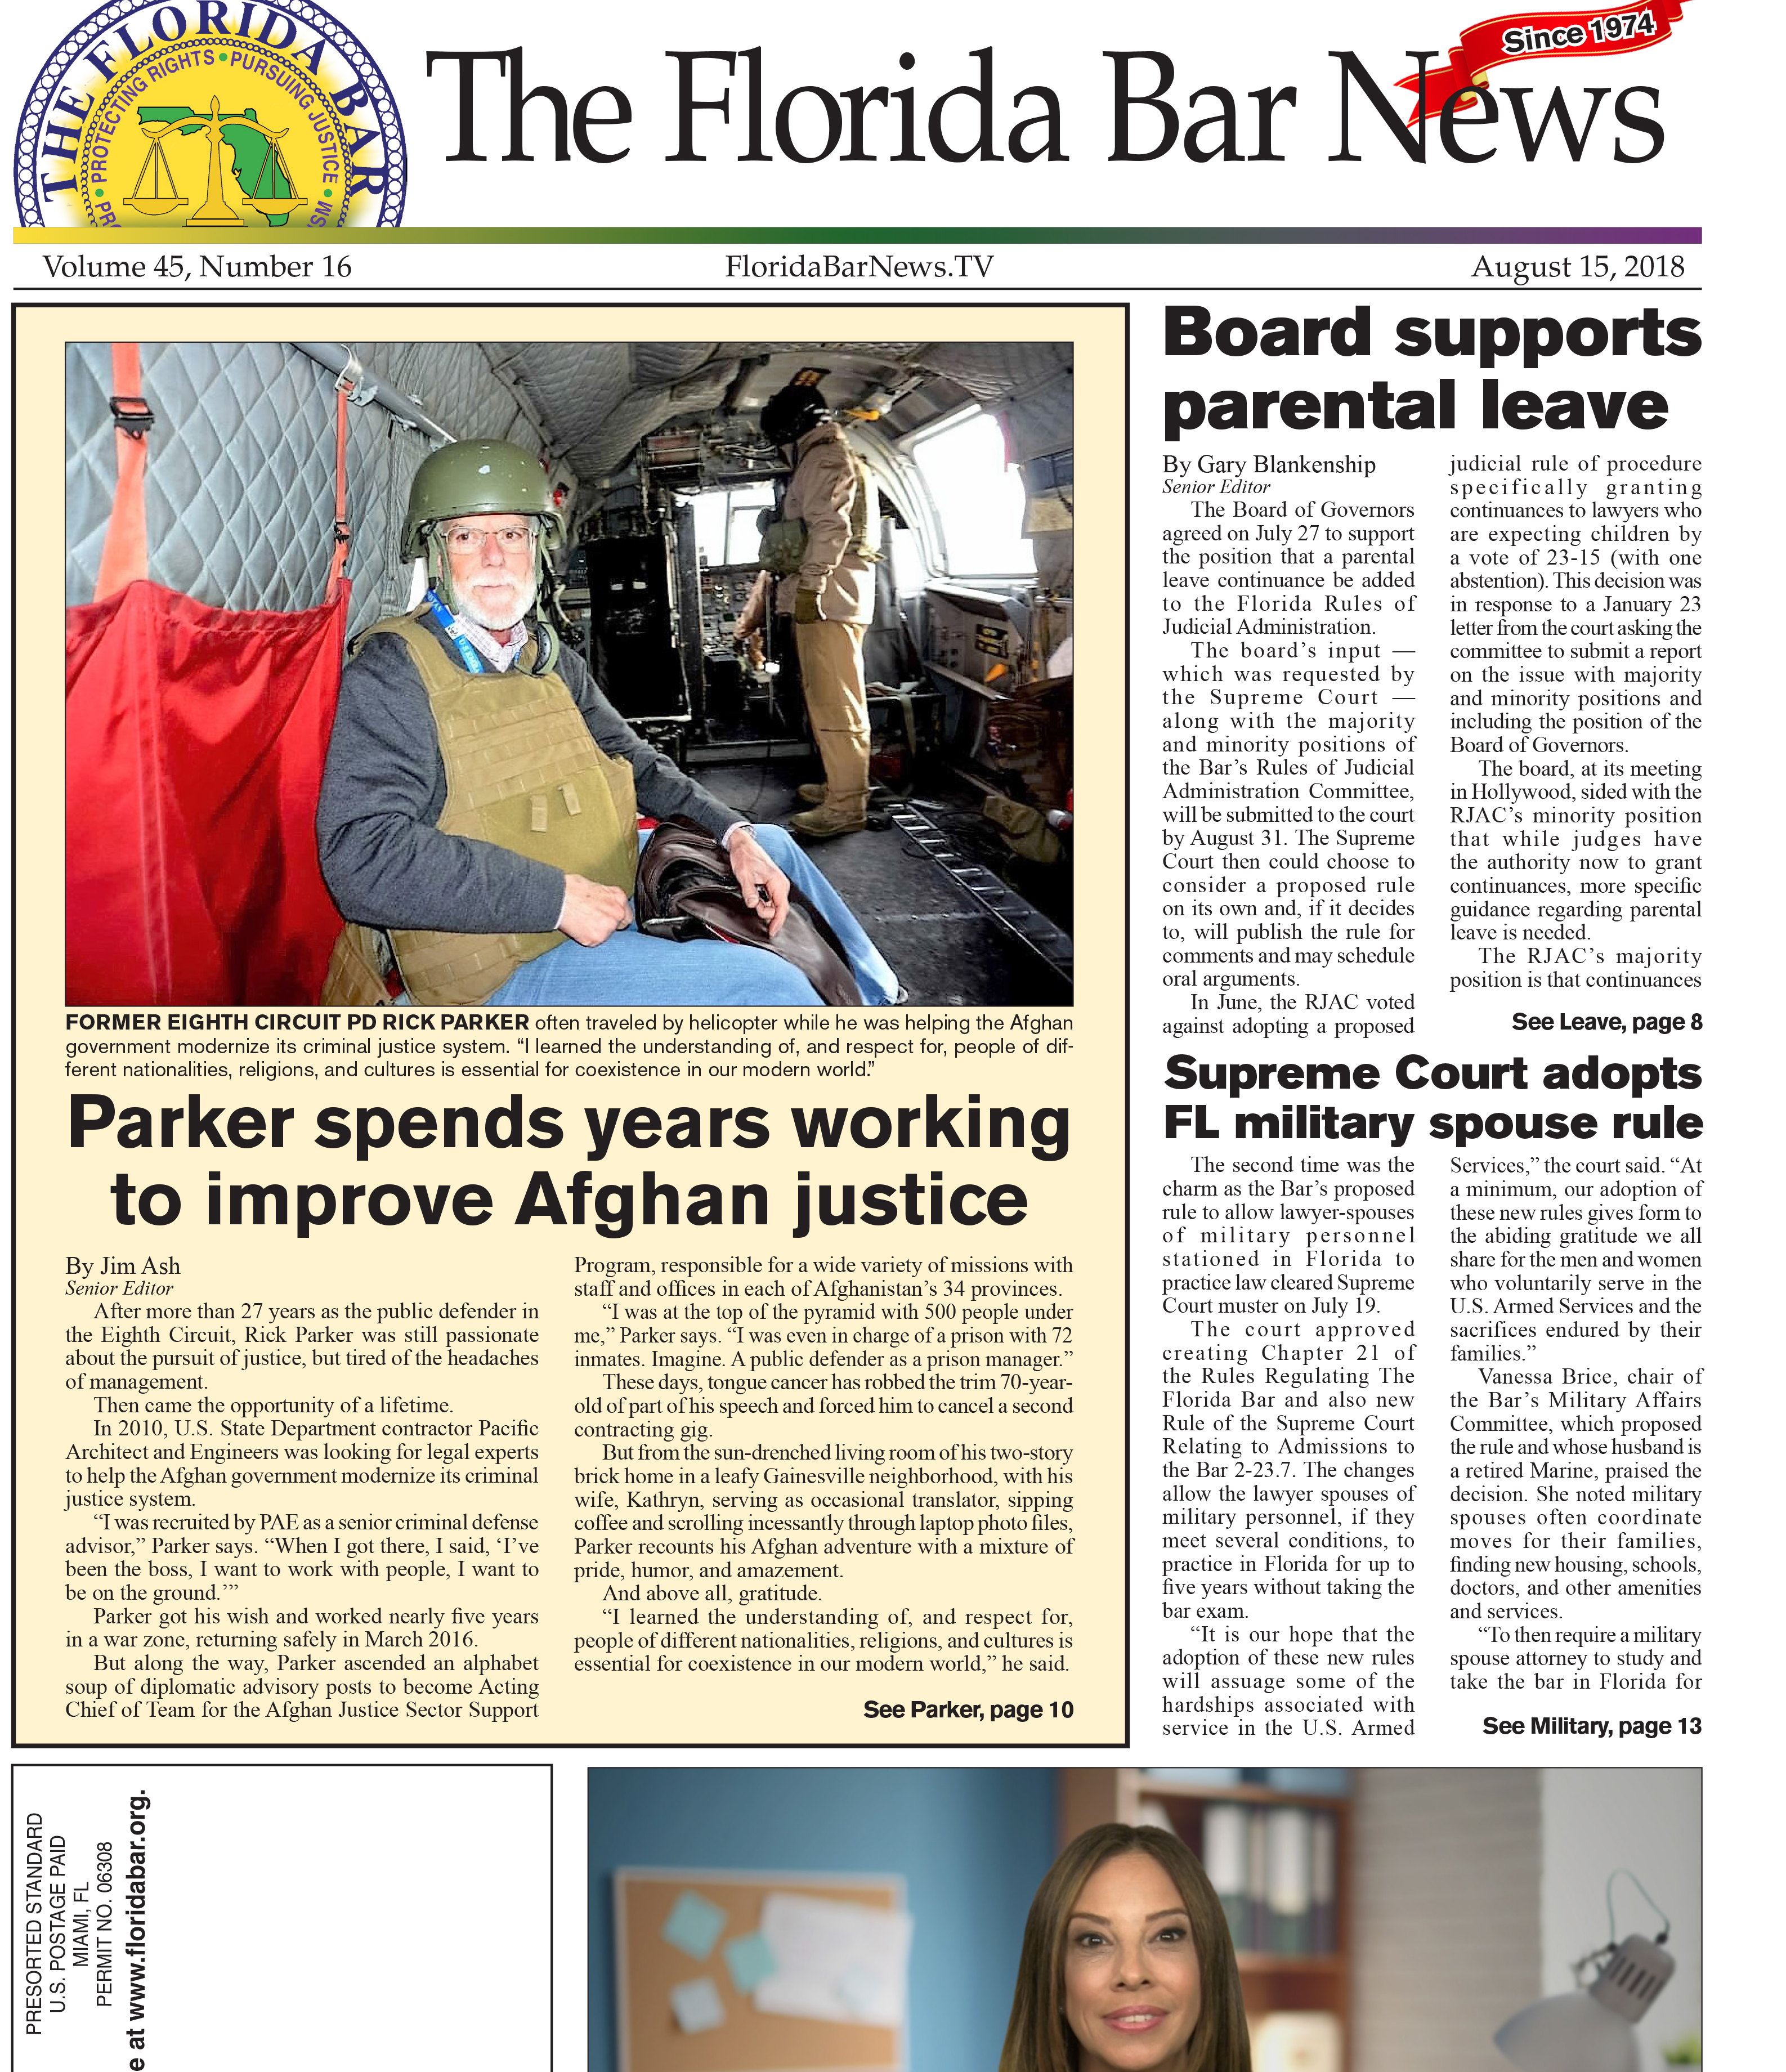 The August 15 Bar News: Parental leave continuance, military spouse rule and the work of a former public defender in Afghanistan